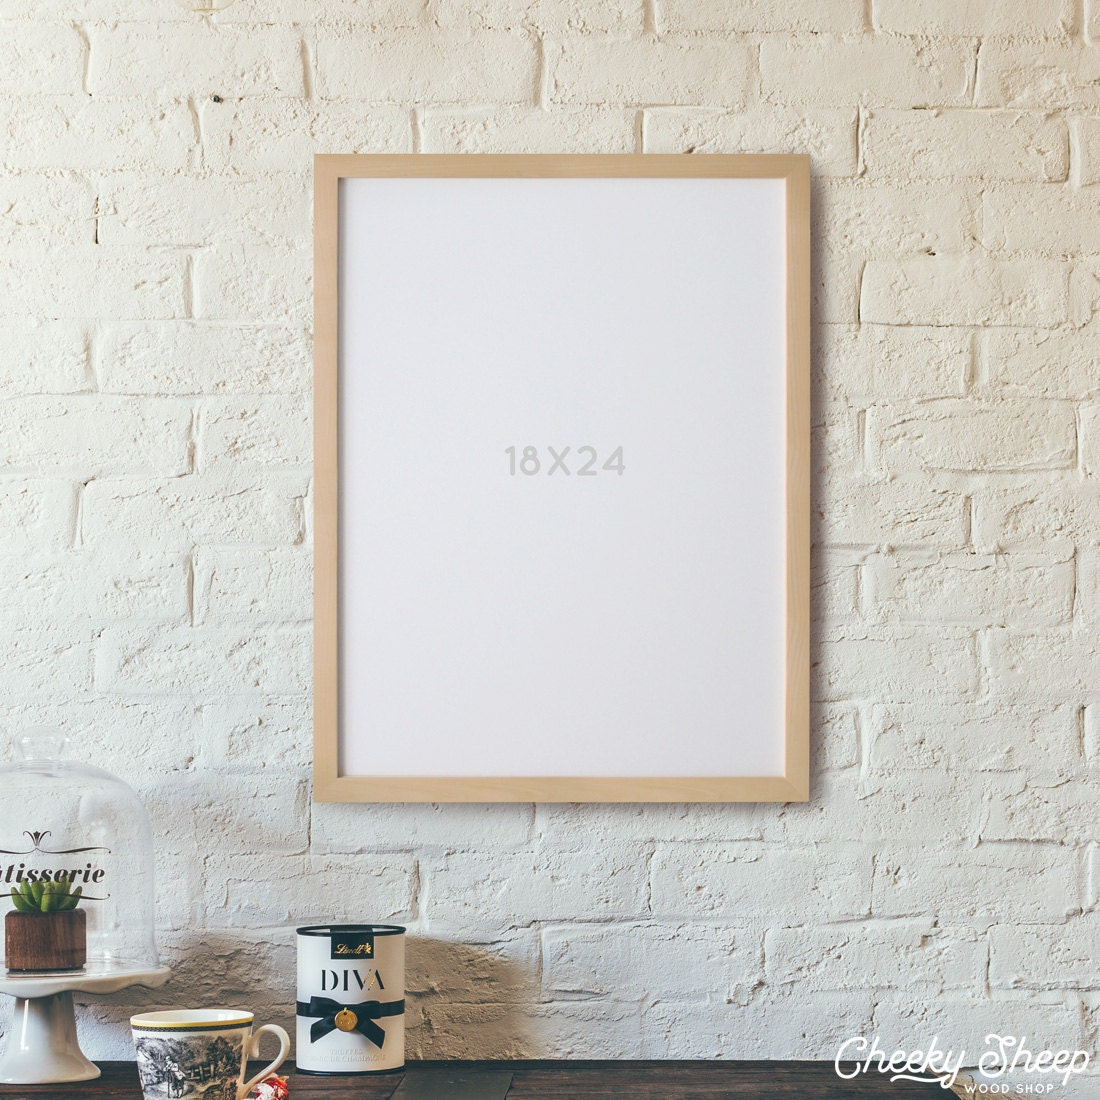 18x24 poster frame no glass 18 x 24 unfinished wood poster frame art frame photo frame large poster frame large format frame - Wood Poster Frames